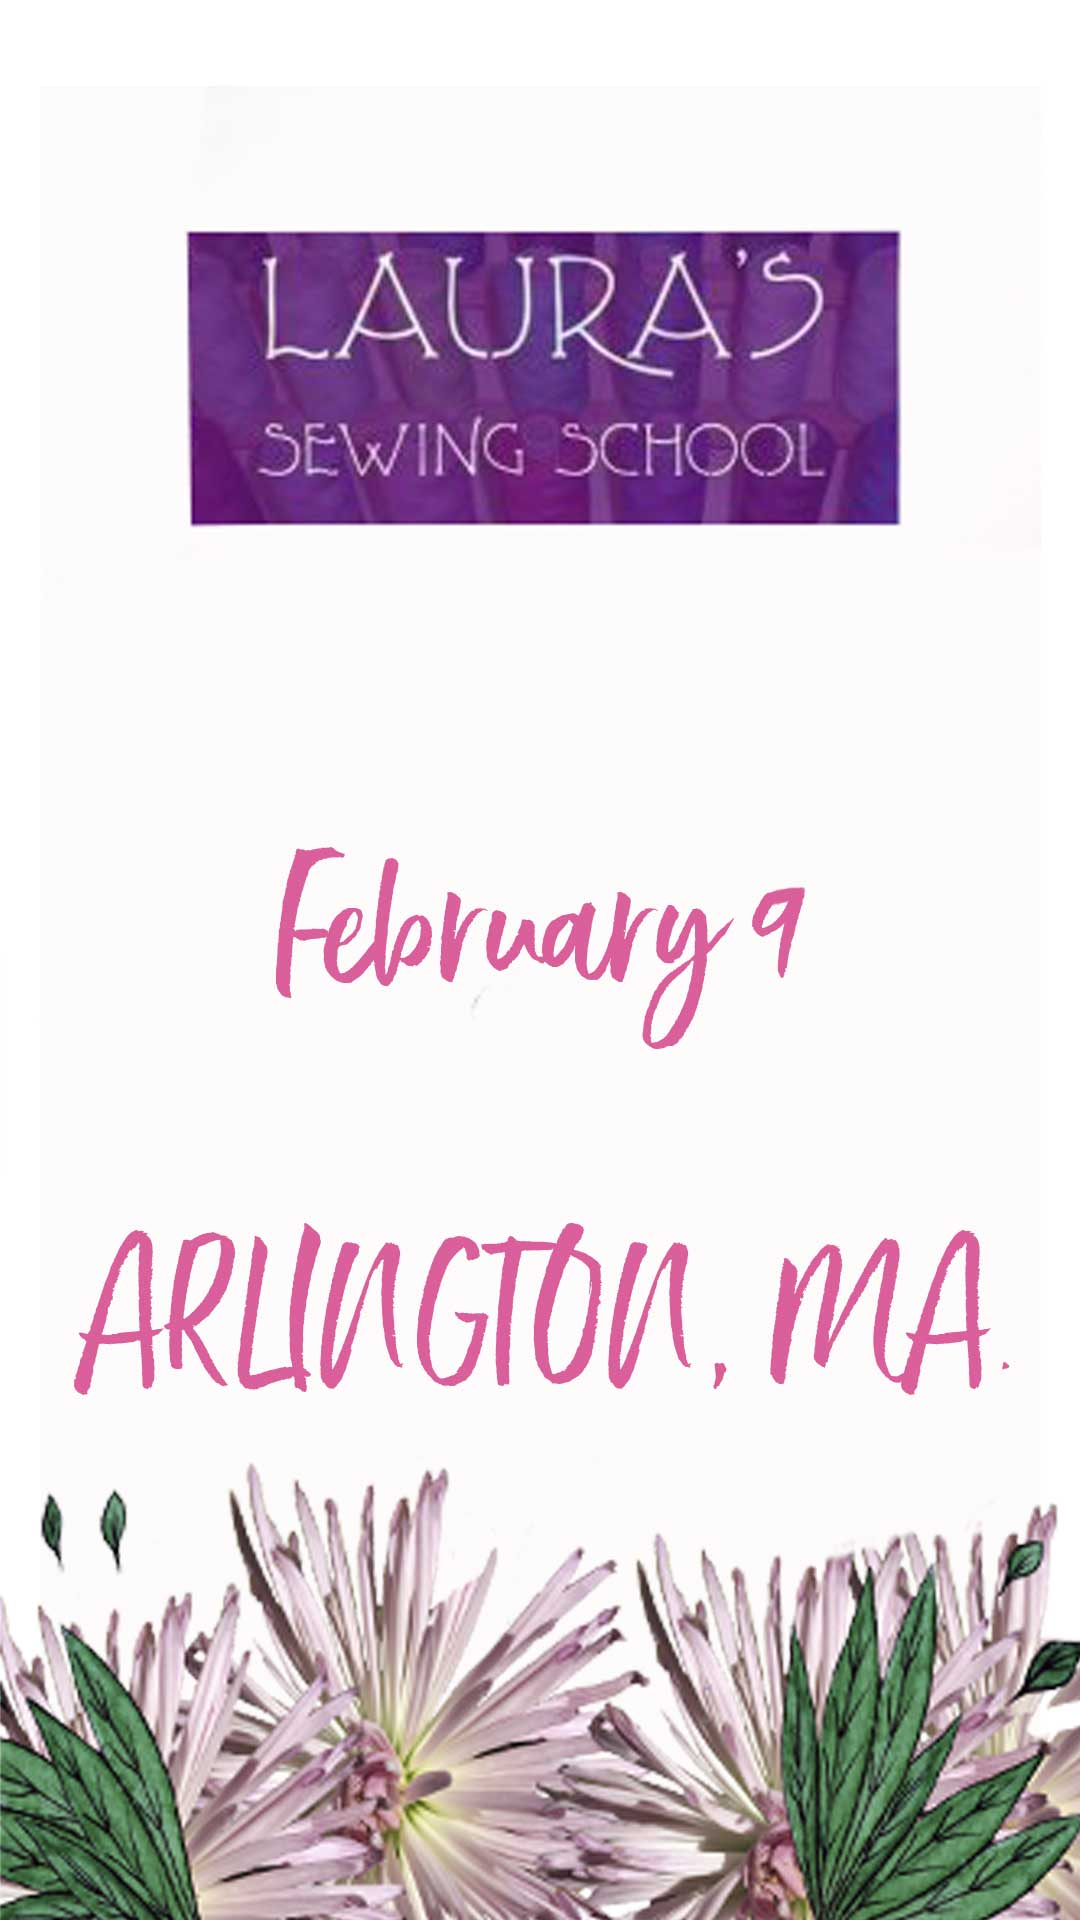 Laura's Sewing School Arlington, MA